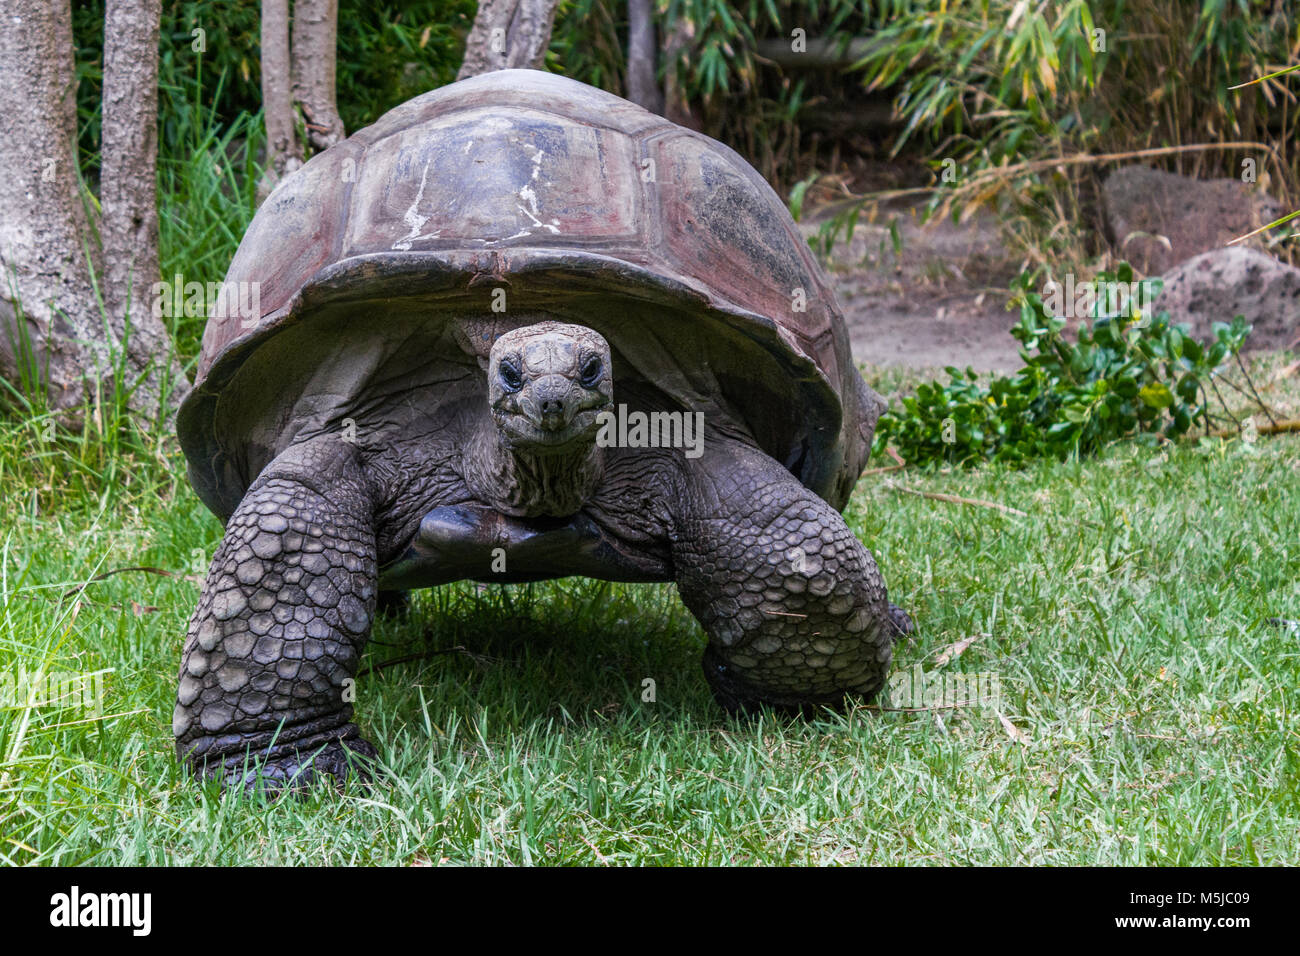 The Aldabra giant tortoise, from the islands of the Aldabra Atoll in the Seychelles, is one of the largest tortoises - Stock Image